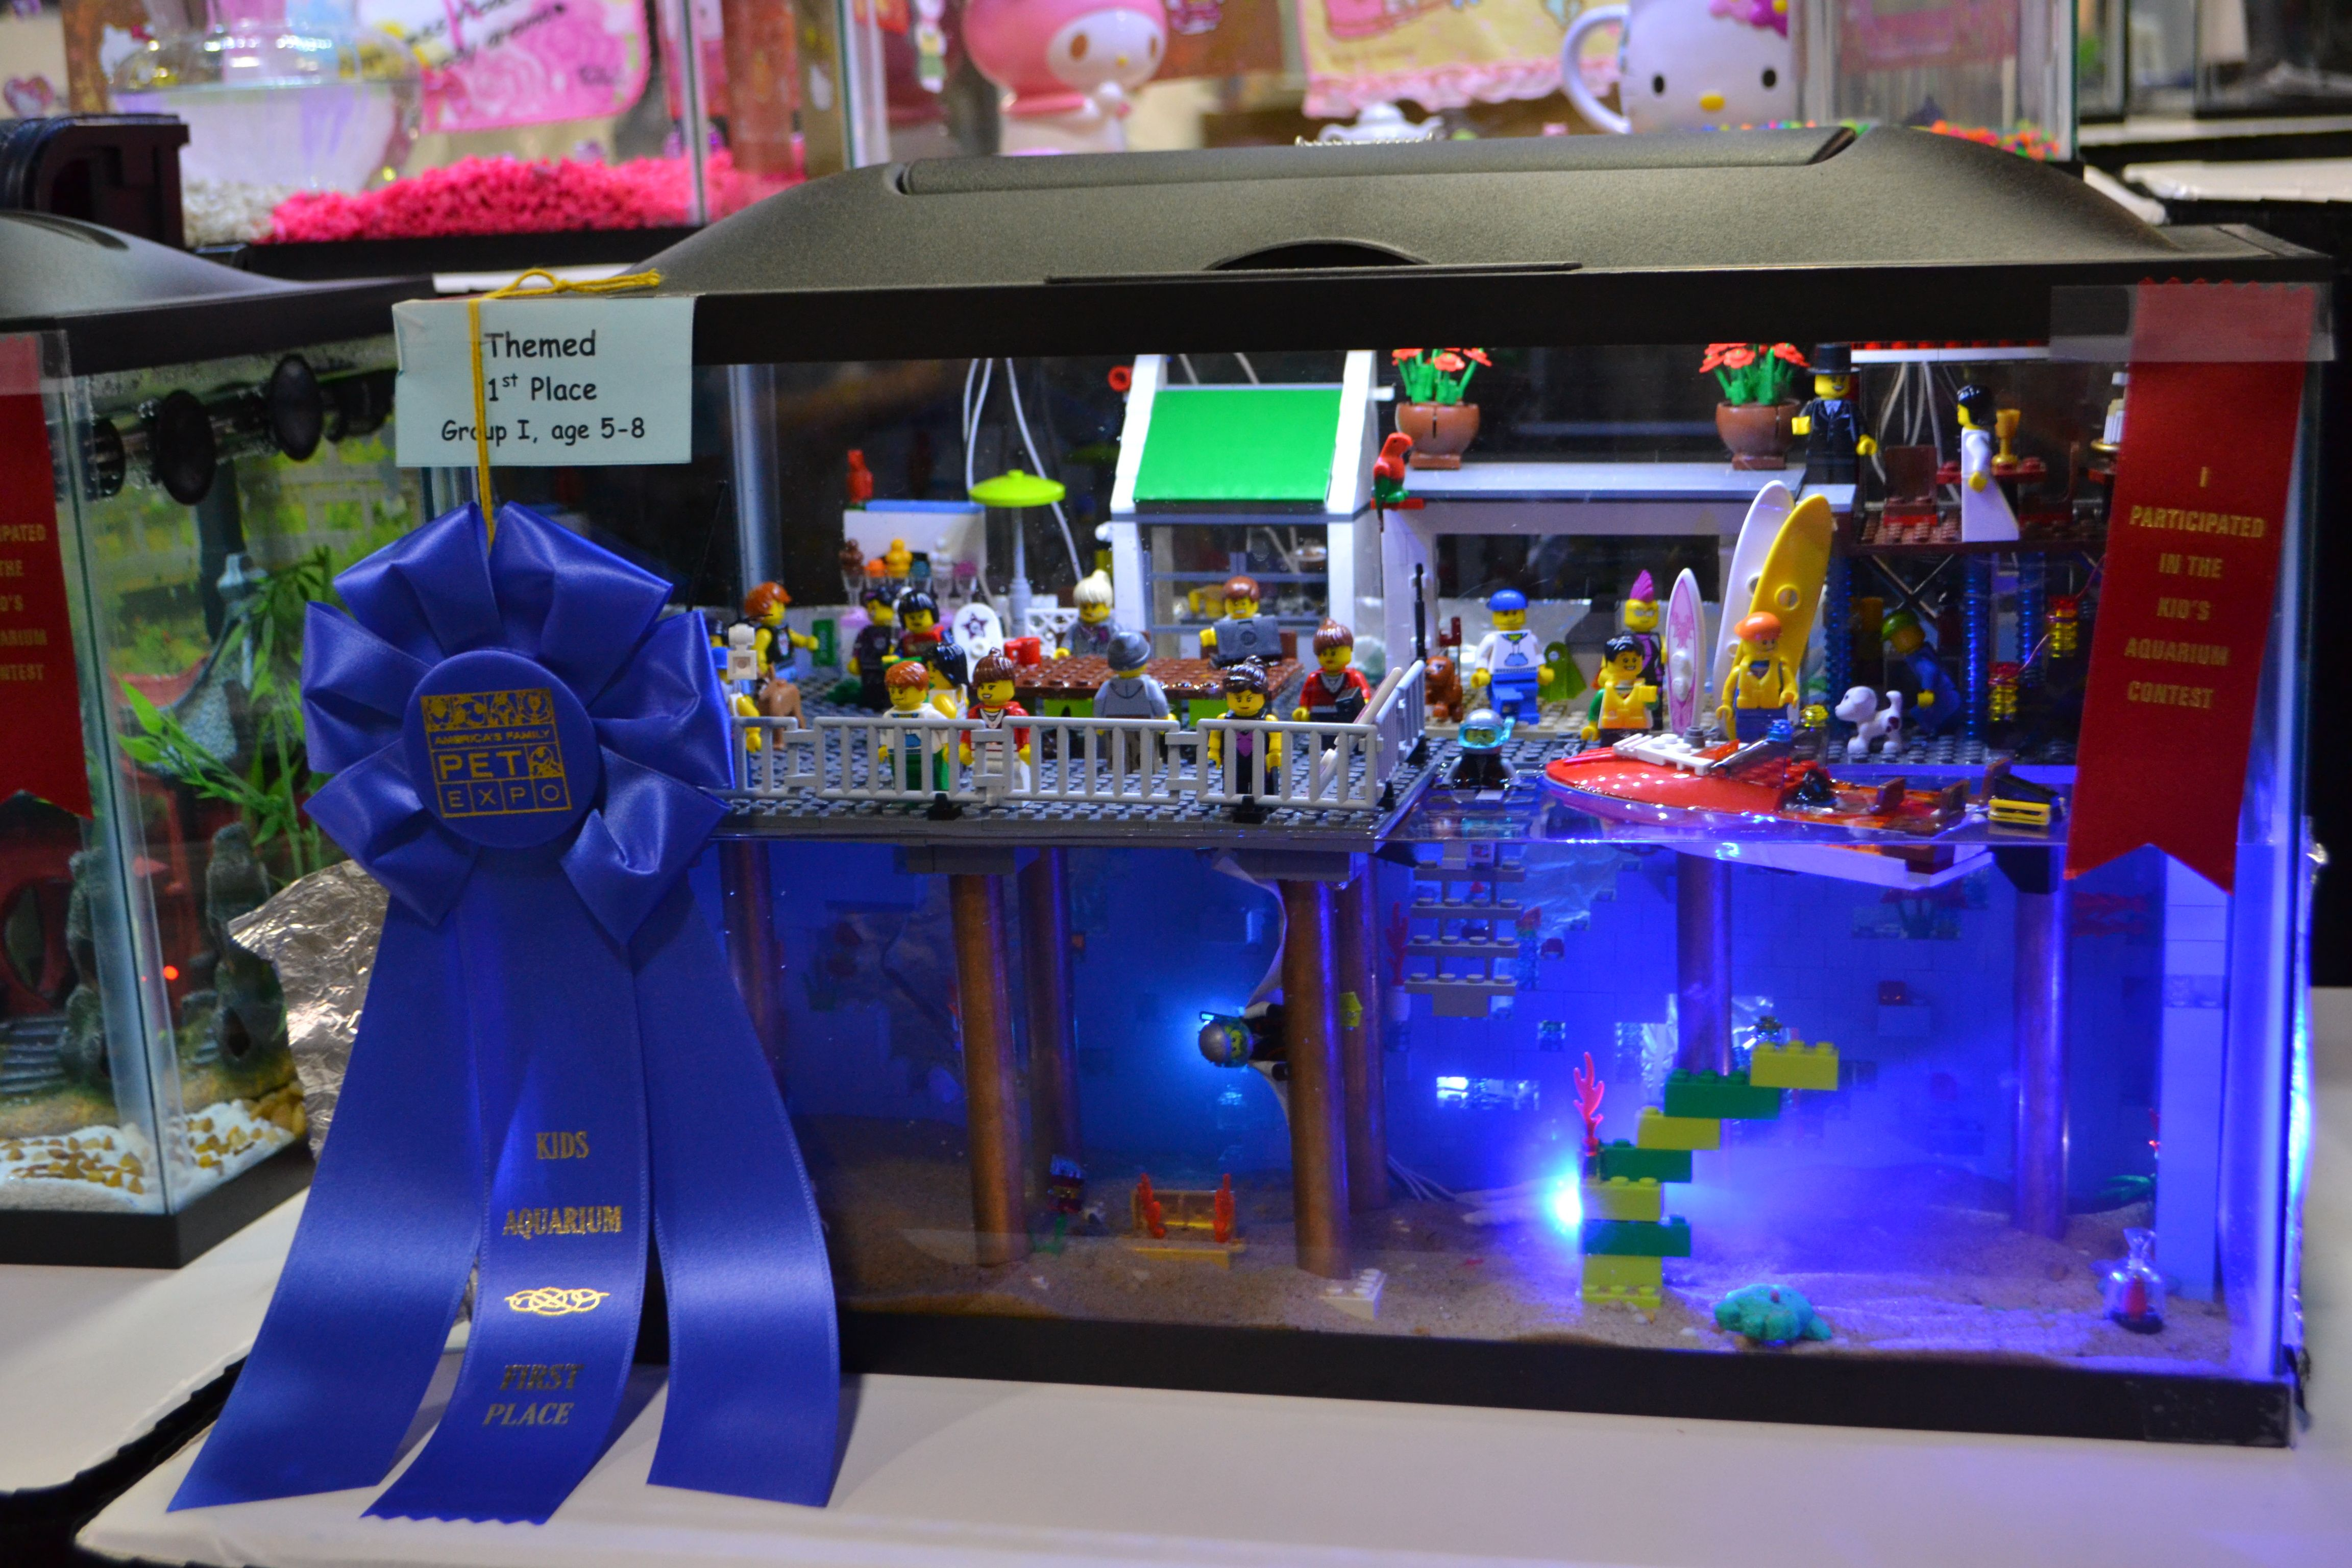 Kids Aquarium Contest Themed Group 1 1st Place Aquarius